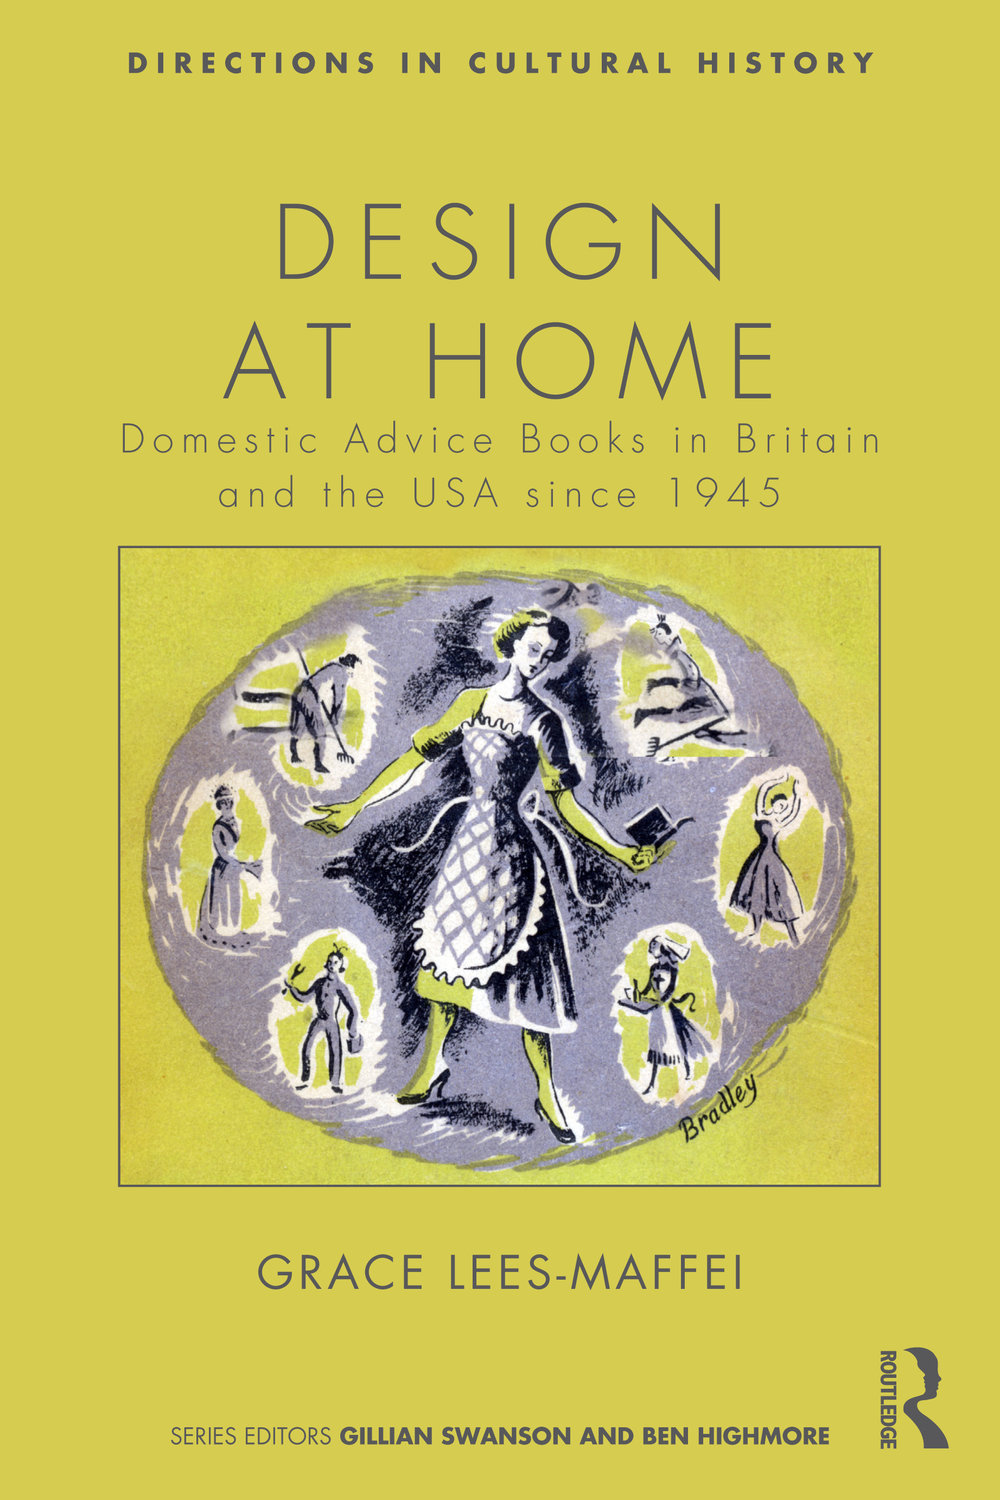 Design at Home - Domestic Advice Books in Britain and the USA since 1945. Grace Lees-Maffei. Abingdon: Routledge, 2014.